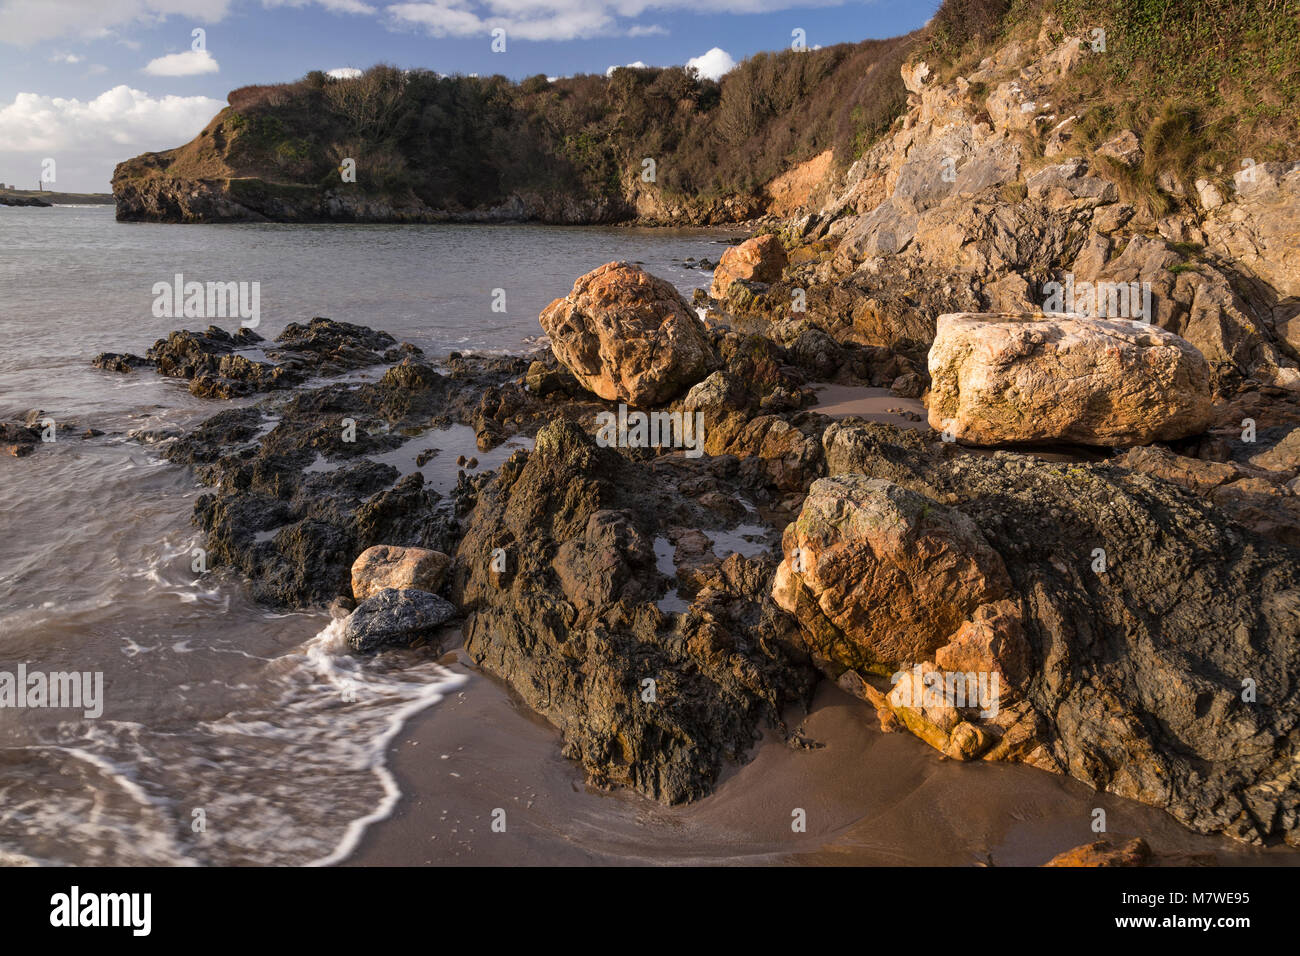 Rocks on the  beach at Cemaes Bay, Anglesey, North Wales coast Stock Photo